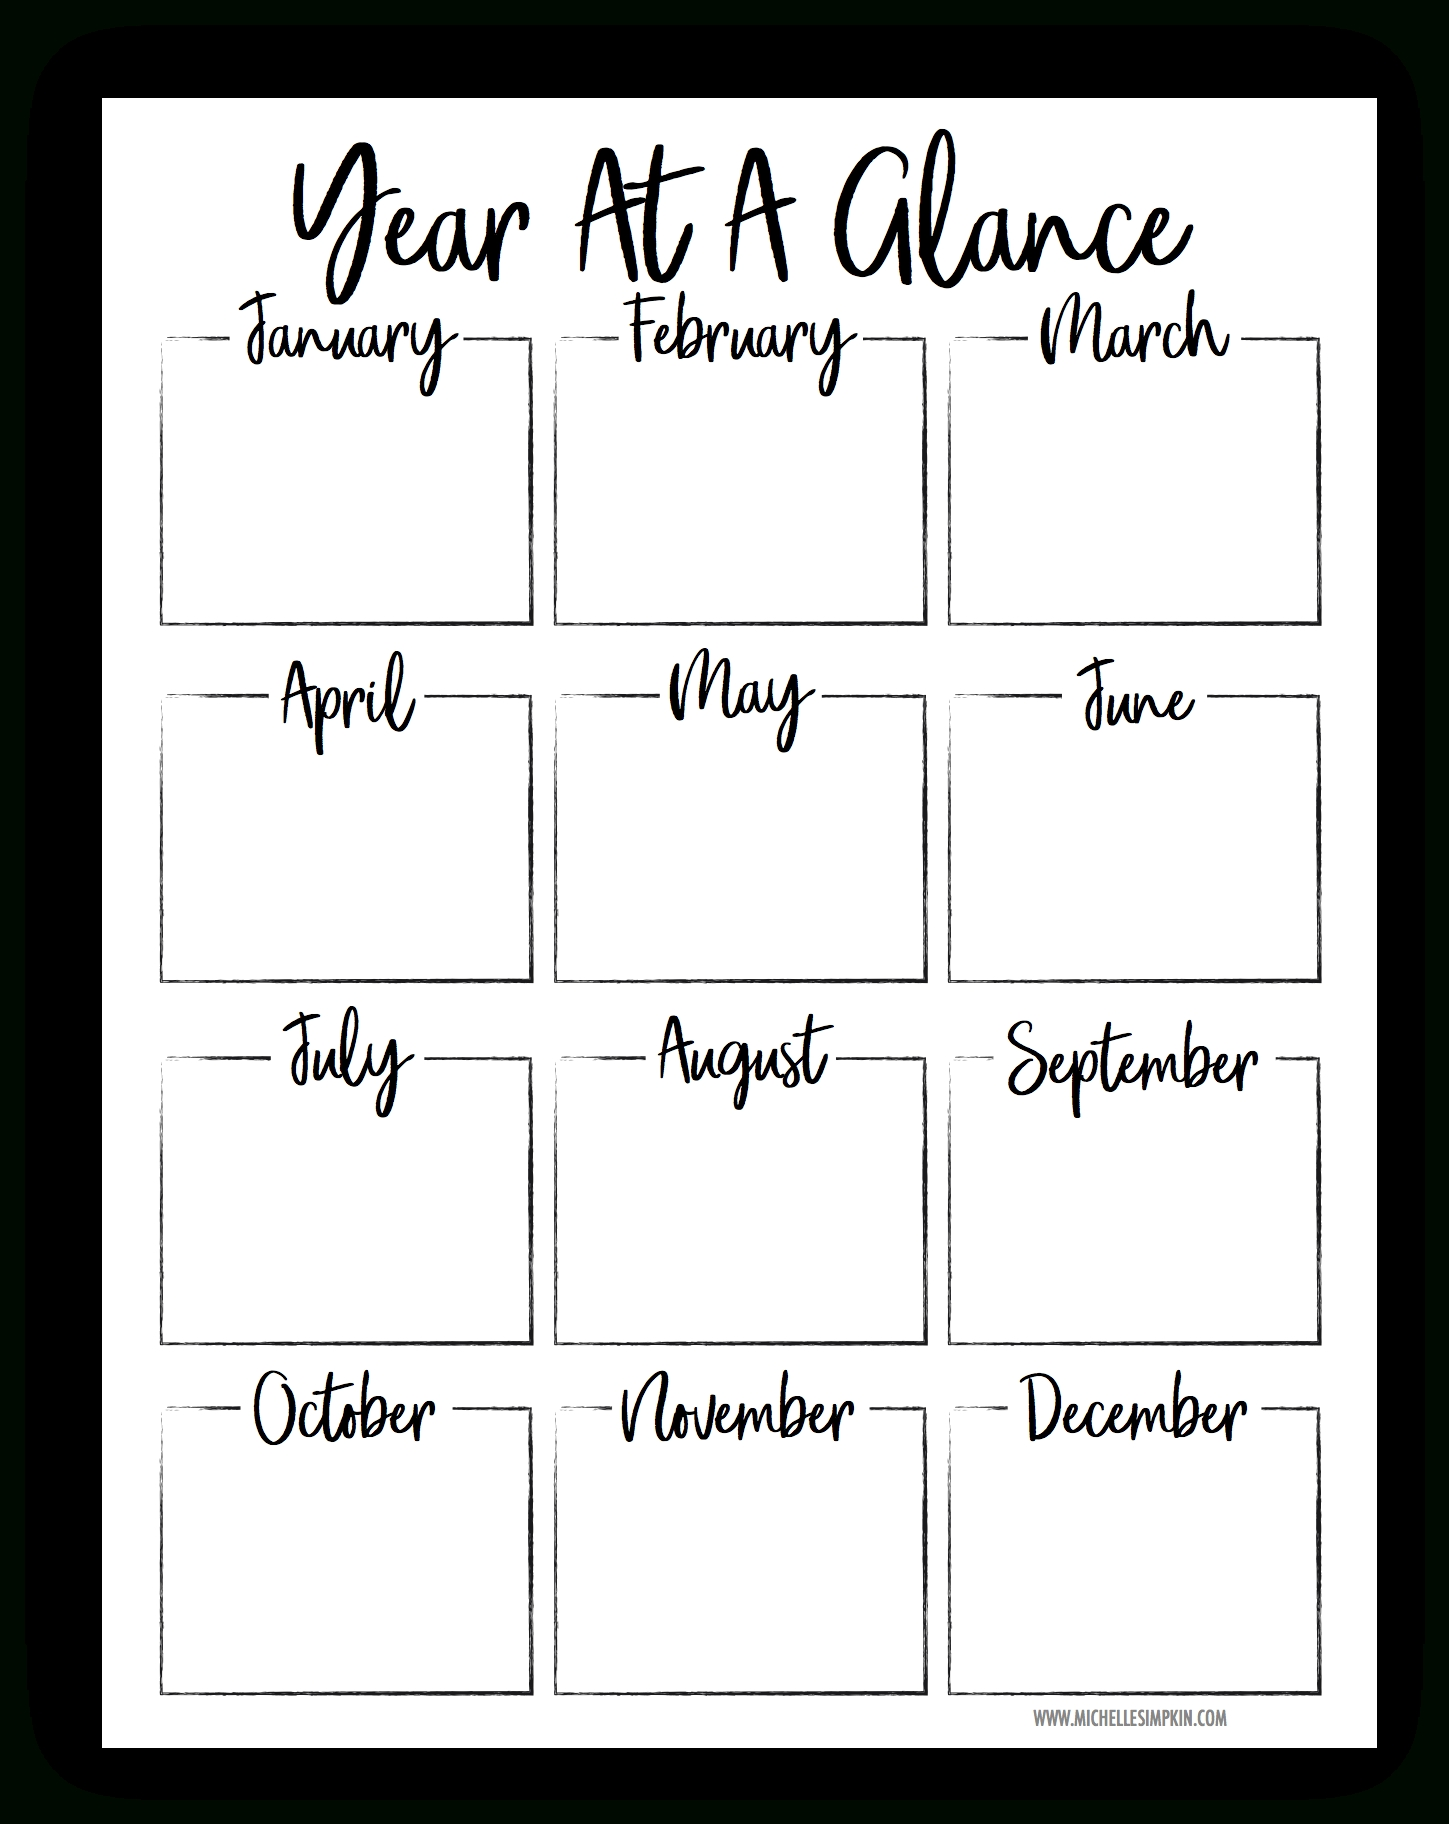 Year At A Glance Printable | Task Lists | Templates Printable Free within Year At A Glance Template